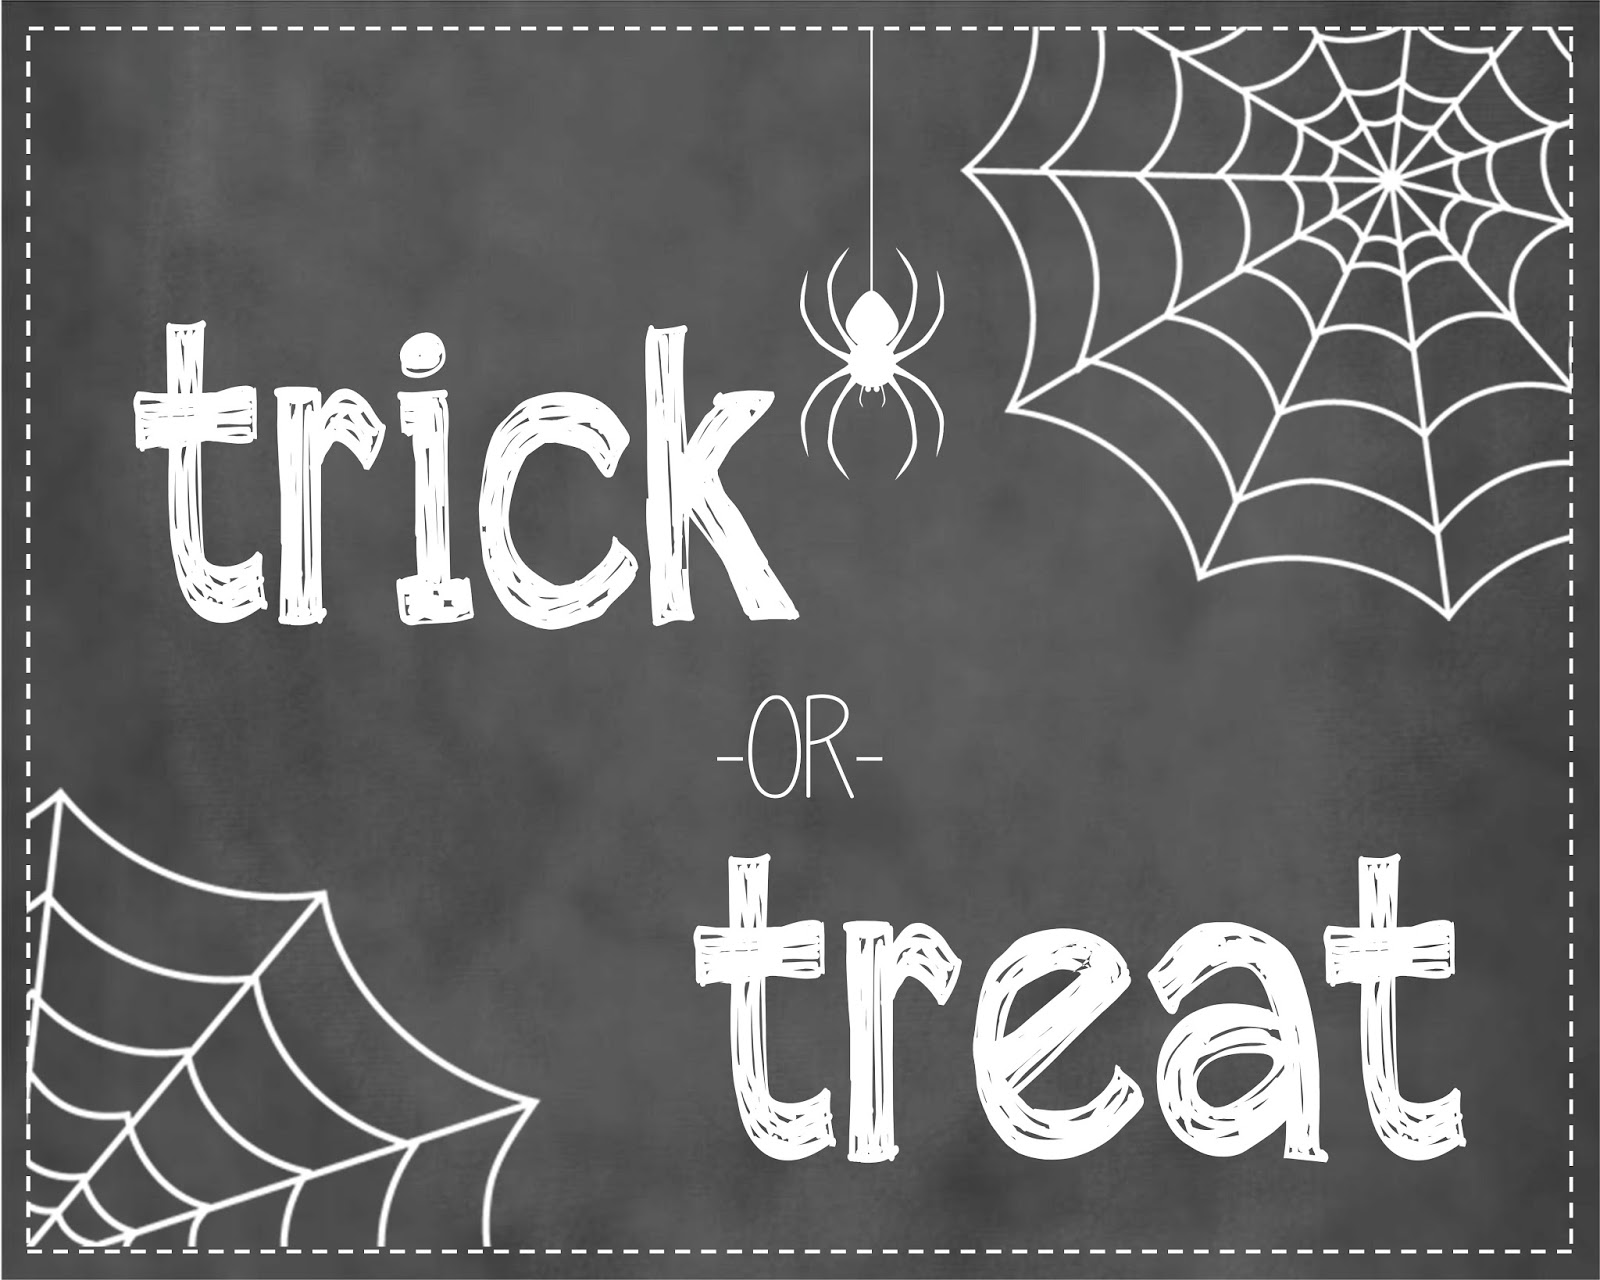 photo regarding Halloween Signs Printable named 2 Magical Mothers: 8x10 Chalkboard Halloween Signs or symptoms Cost-free